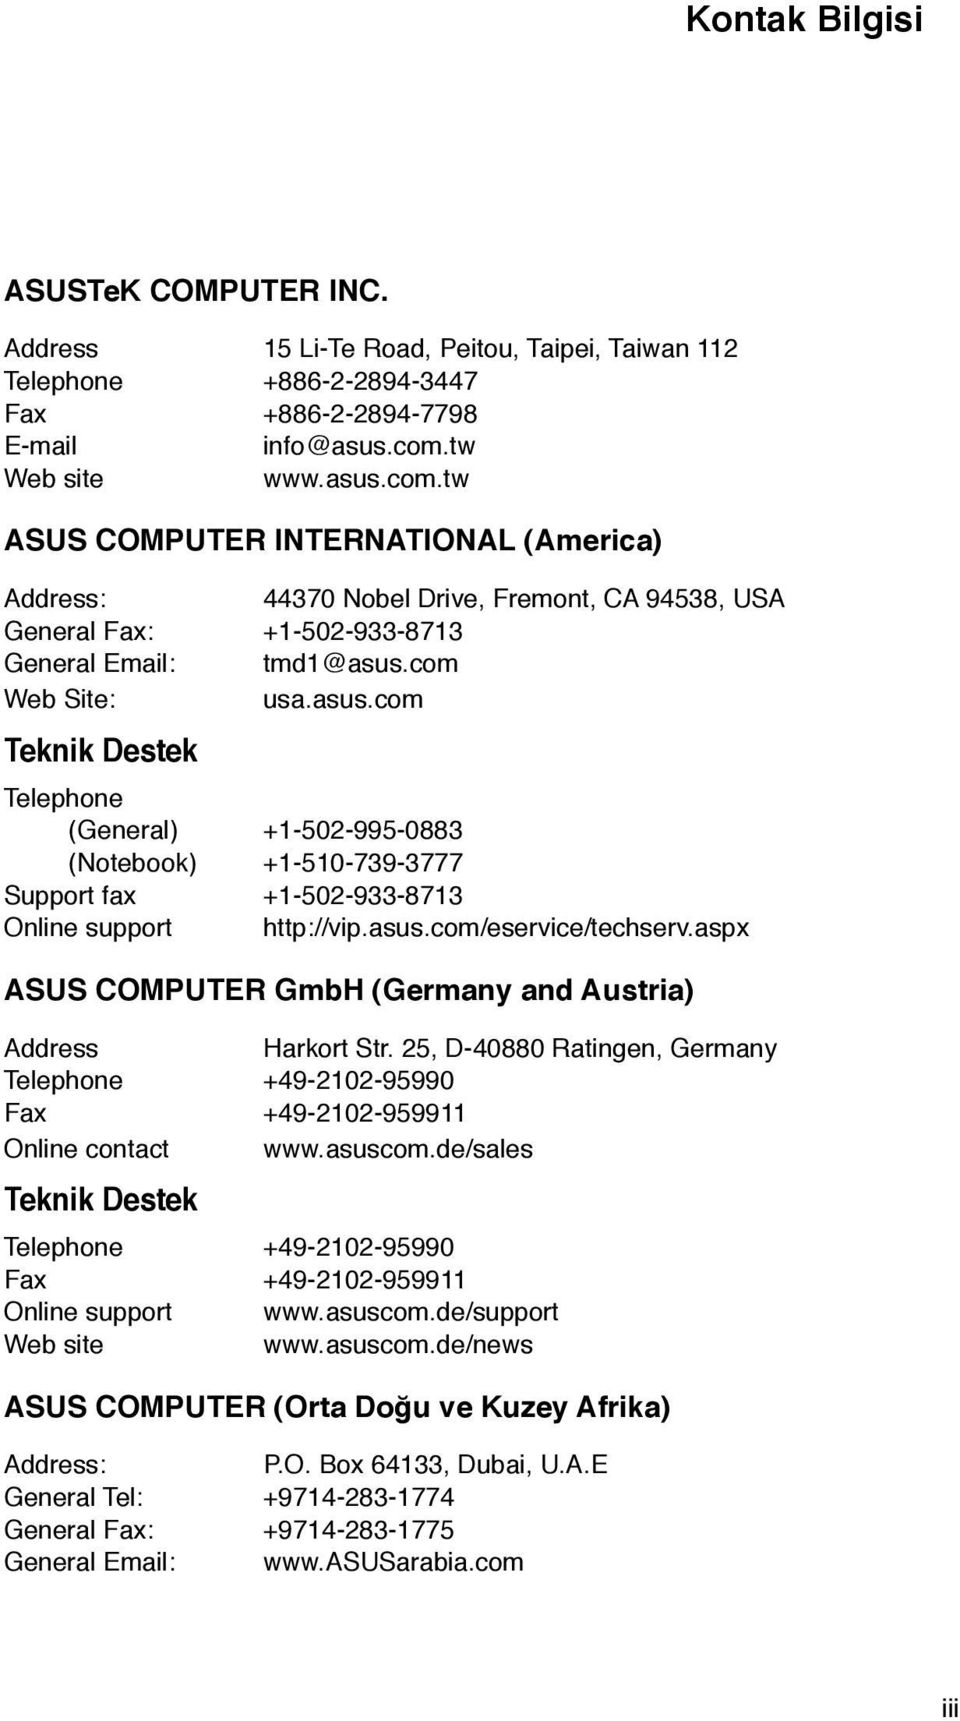 asus.com/eservice/techserv.aspx ASUS COMPUTER GmbH (Germany and Austria) Address Harkort Str. 25, D-40880 Ratingen, Germany Telephone +49-2102-95990 Fax +49-2102-959911 Online contact www.asuscom.